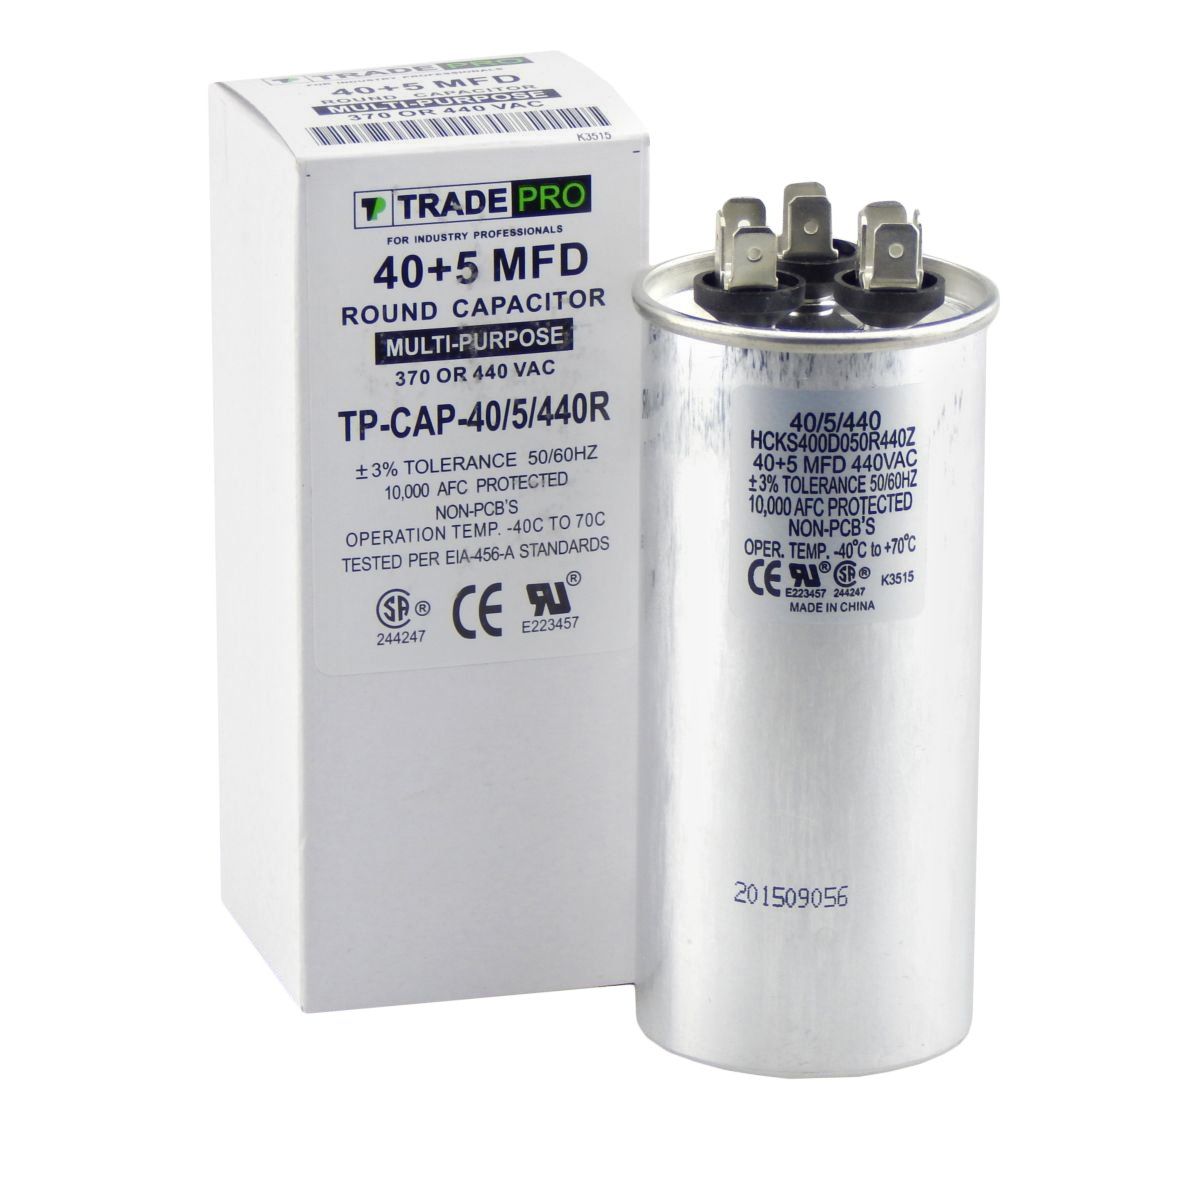 40/5 MFD Multi-Purpose 440 or 370 Volt Round Run Capacitor Replacement TradePro 40+5 by Jay (Image #1)